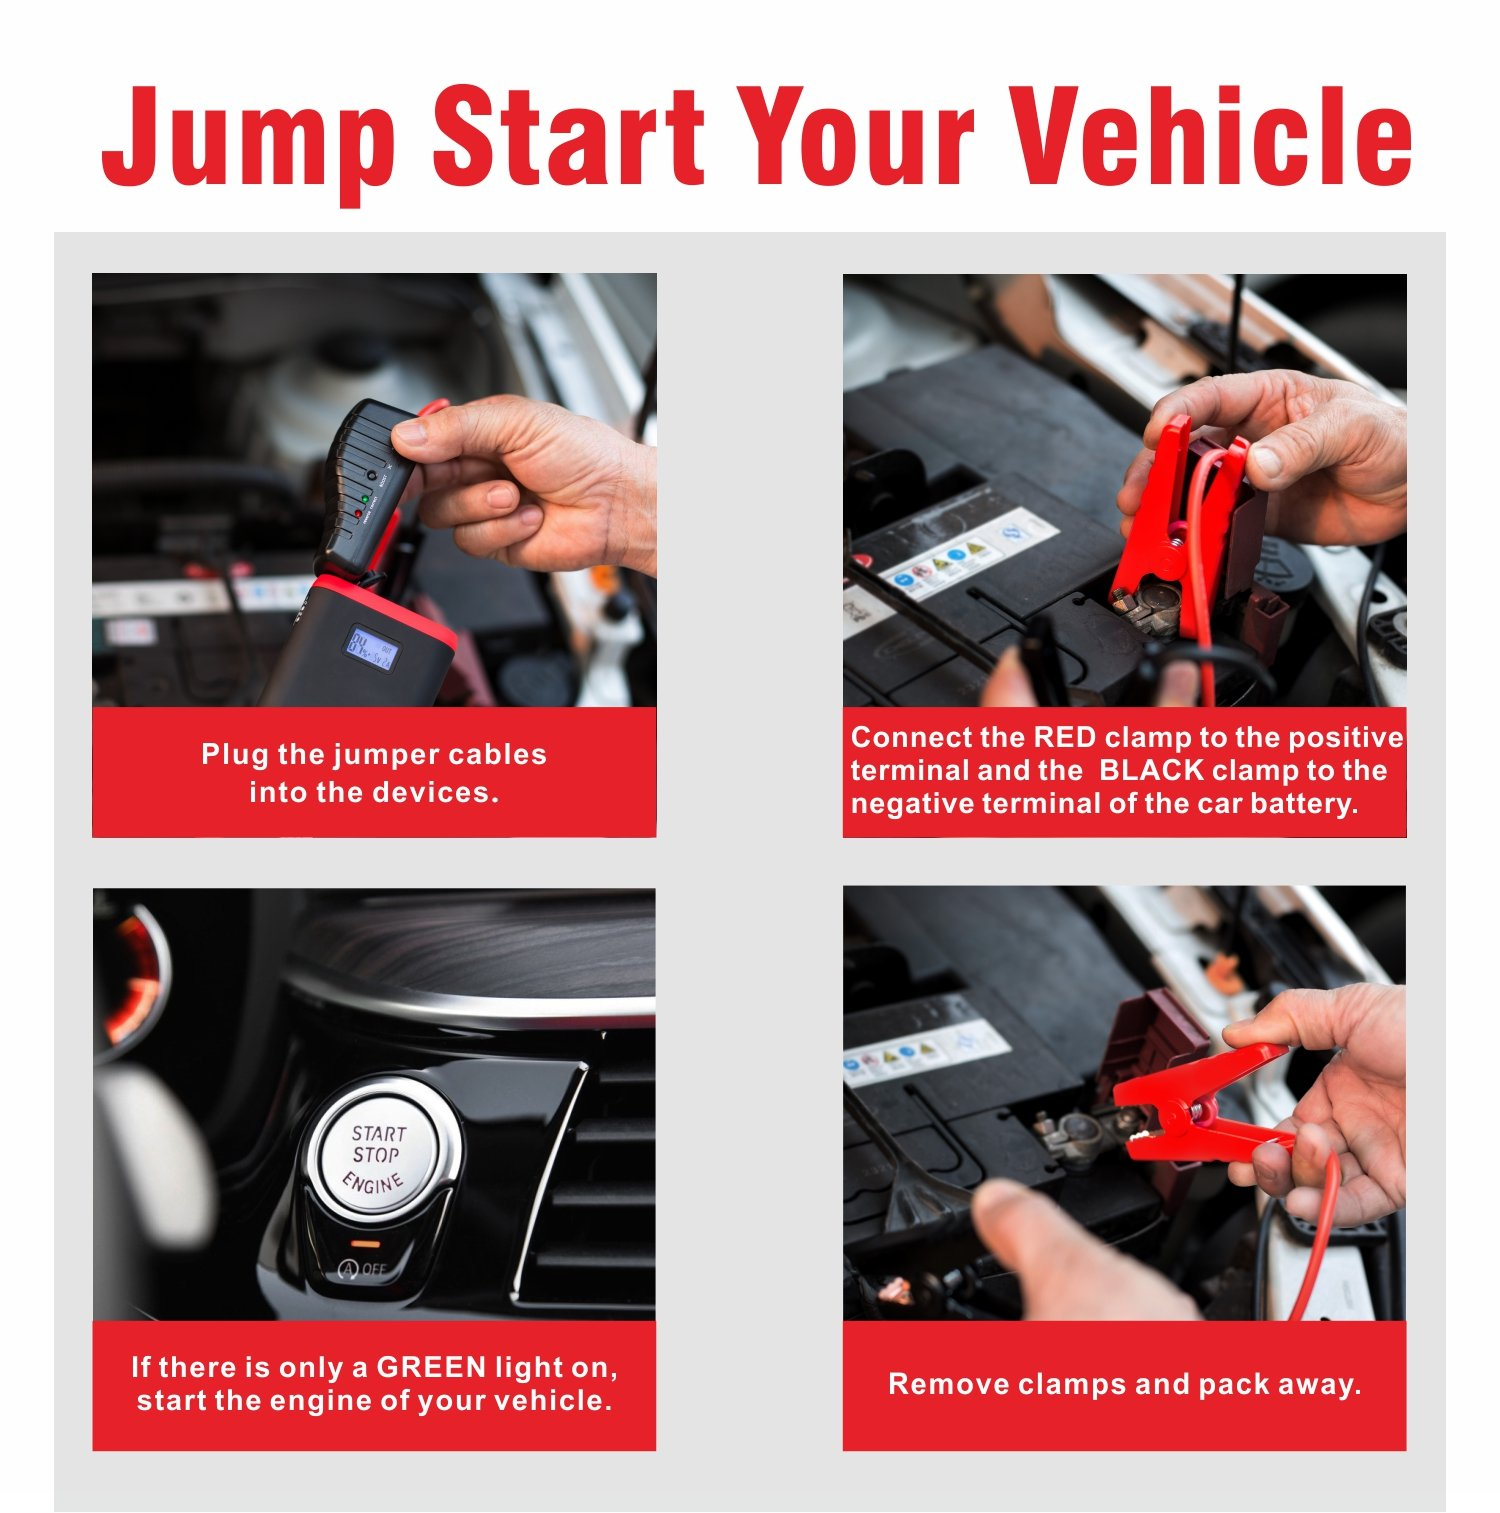 GREPRO Car Jump Starter 500A 12V Vehicle (Up to 4.5L Gas, 2.5L Diesel Engine) Smart Jumper Cable, Auto Battery Booster LED Flashlight, 9000mAh Portable Power Pack Quick Charge by GREPRO (Image #8)